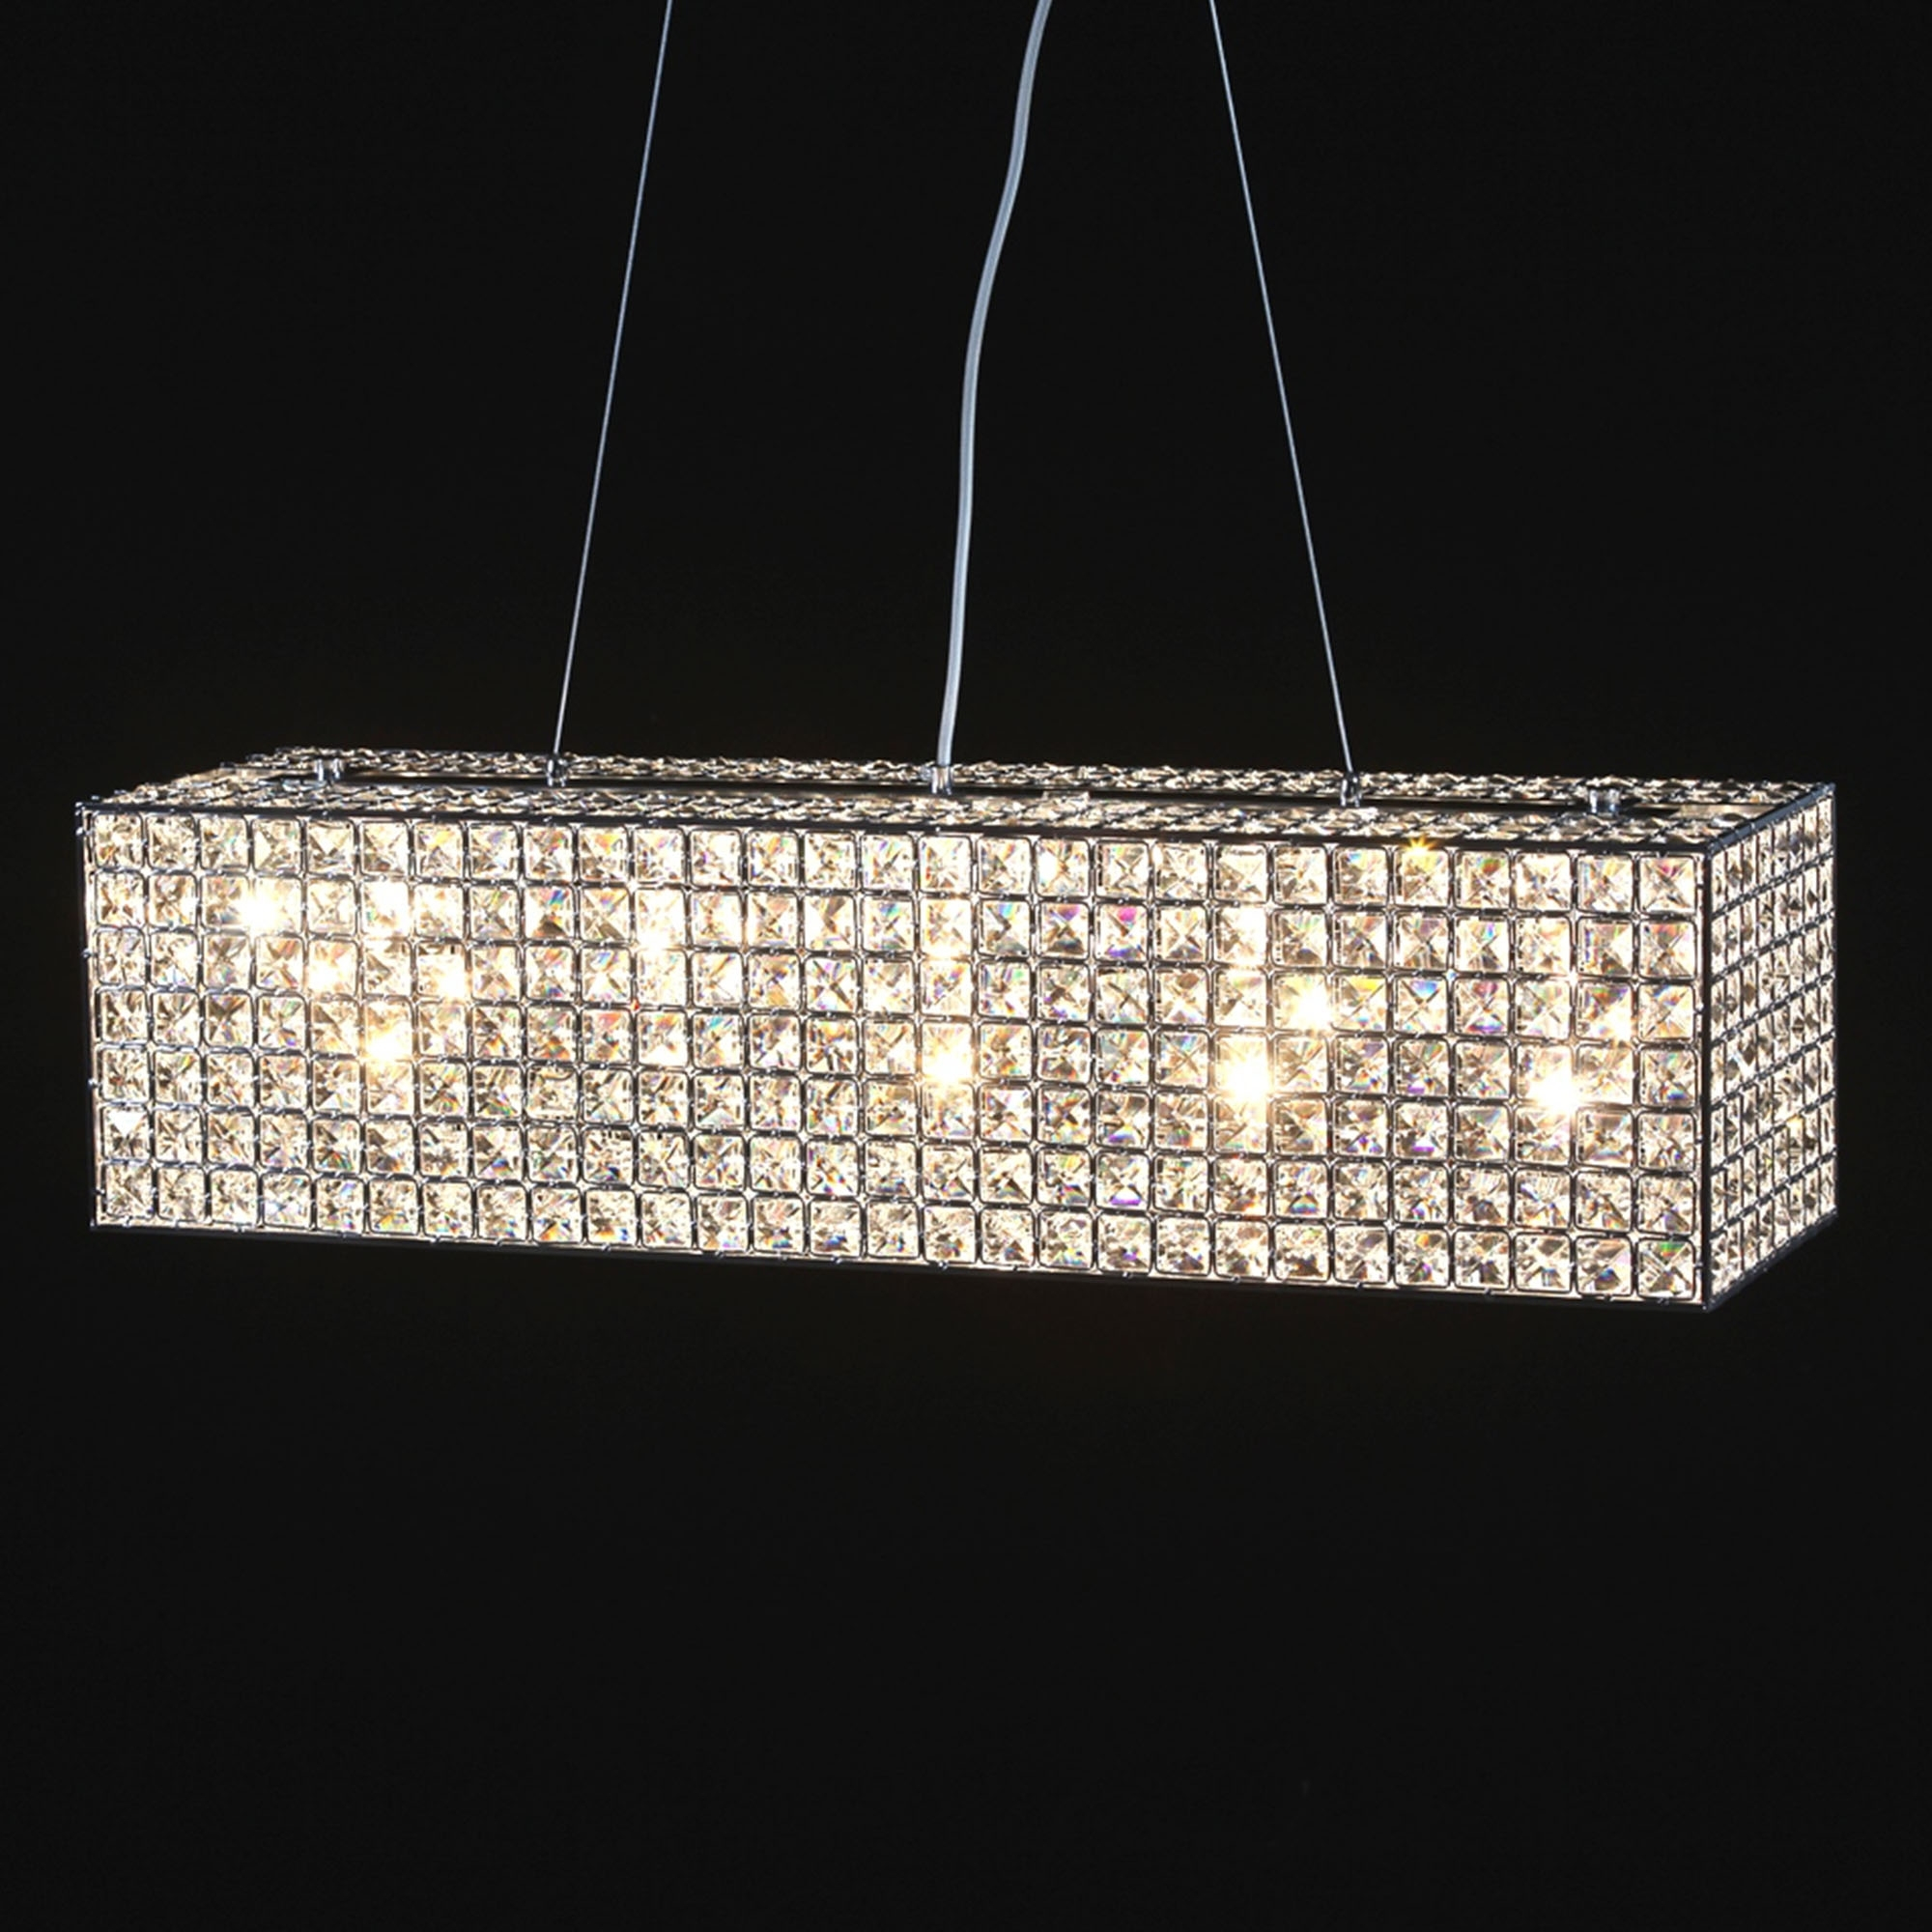 mixed lighting relax a in dining linear the contemporary for new and fits room furniture classy luxorious with design chandelier theme cabinet elegant